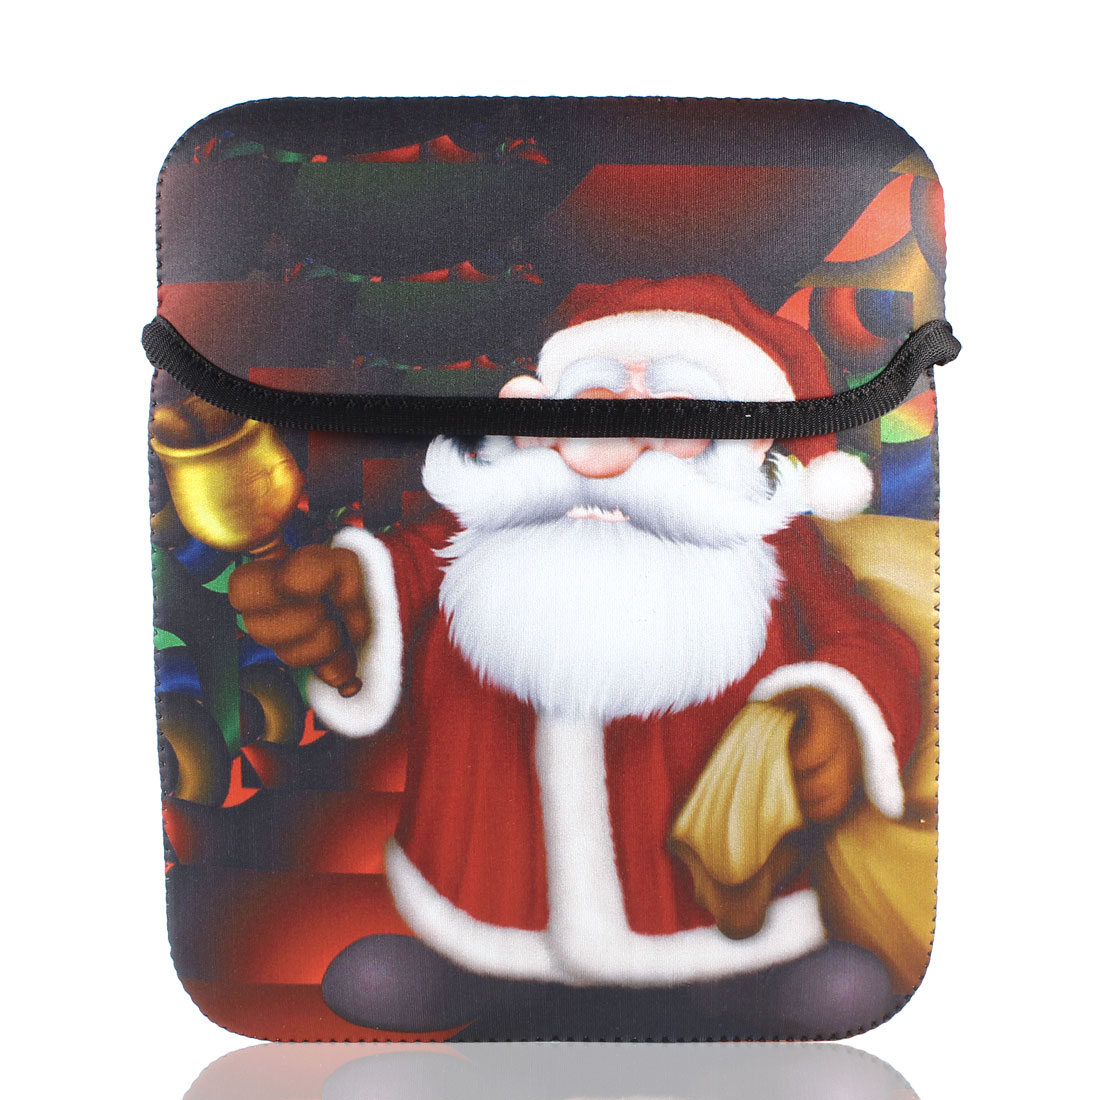 "9"" 9.7"" 10"" Sata Claus Tablet PC Notebook Laptop Sleeve Bag Pouch"